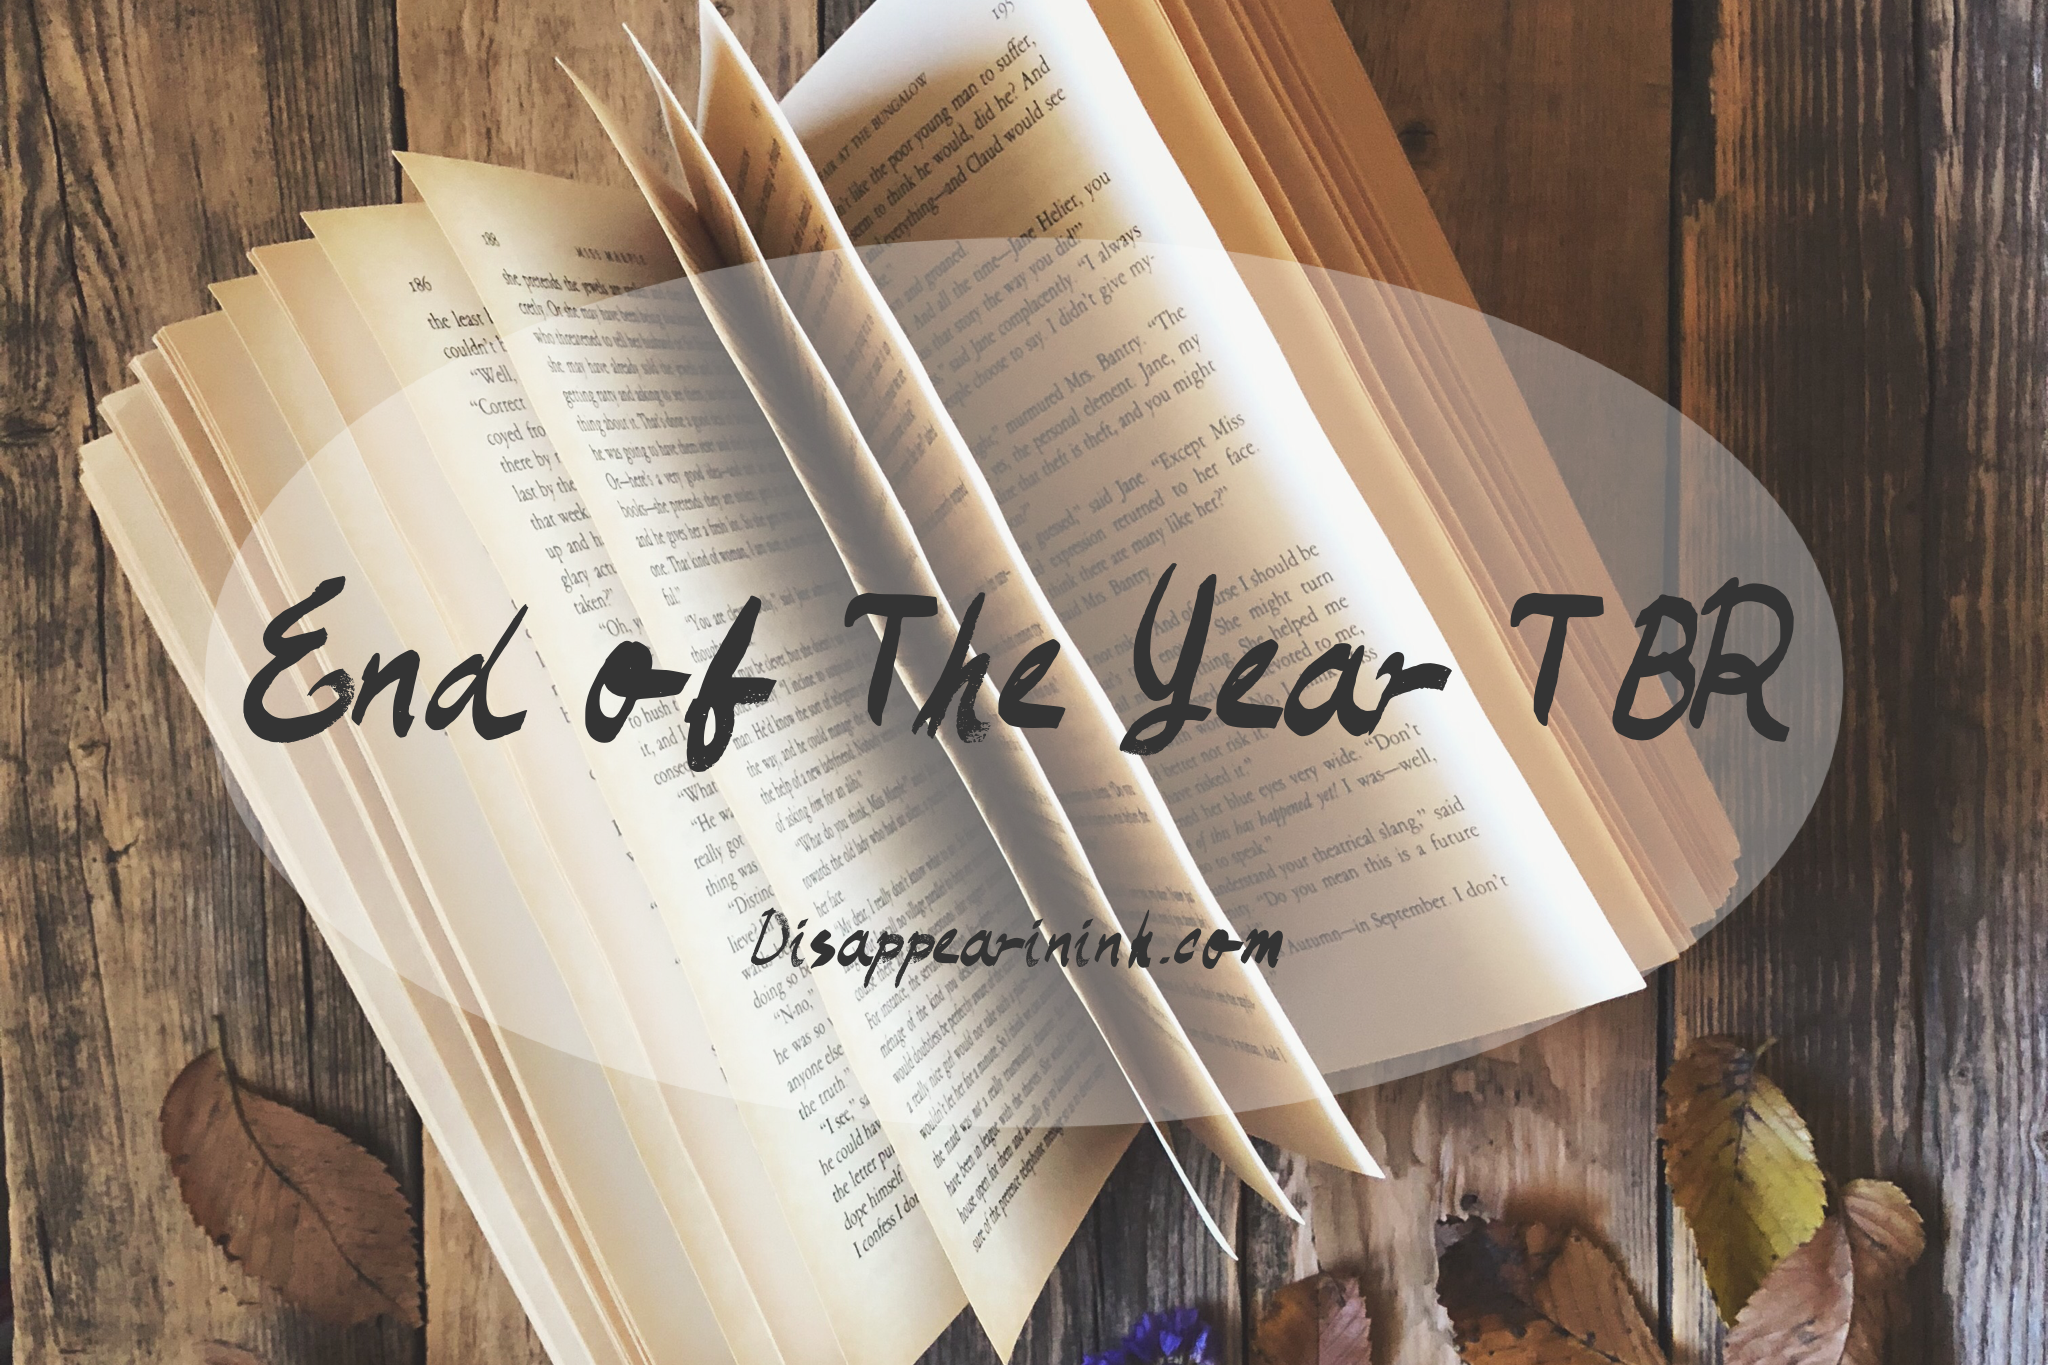 My End Of The Year TBR | 2018 List